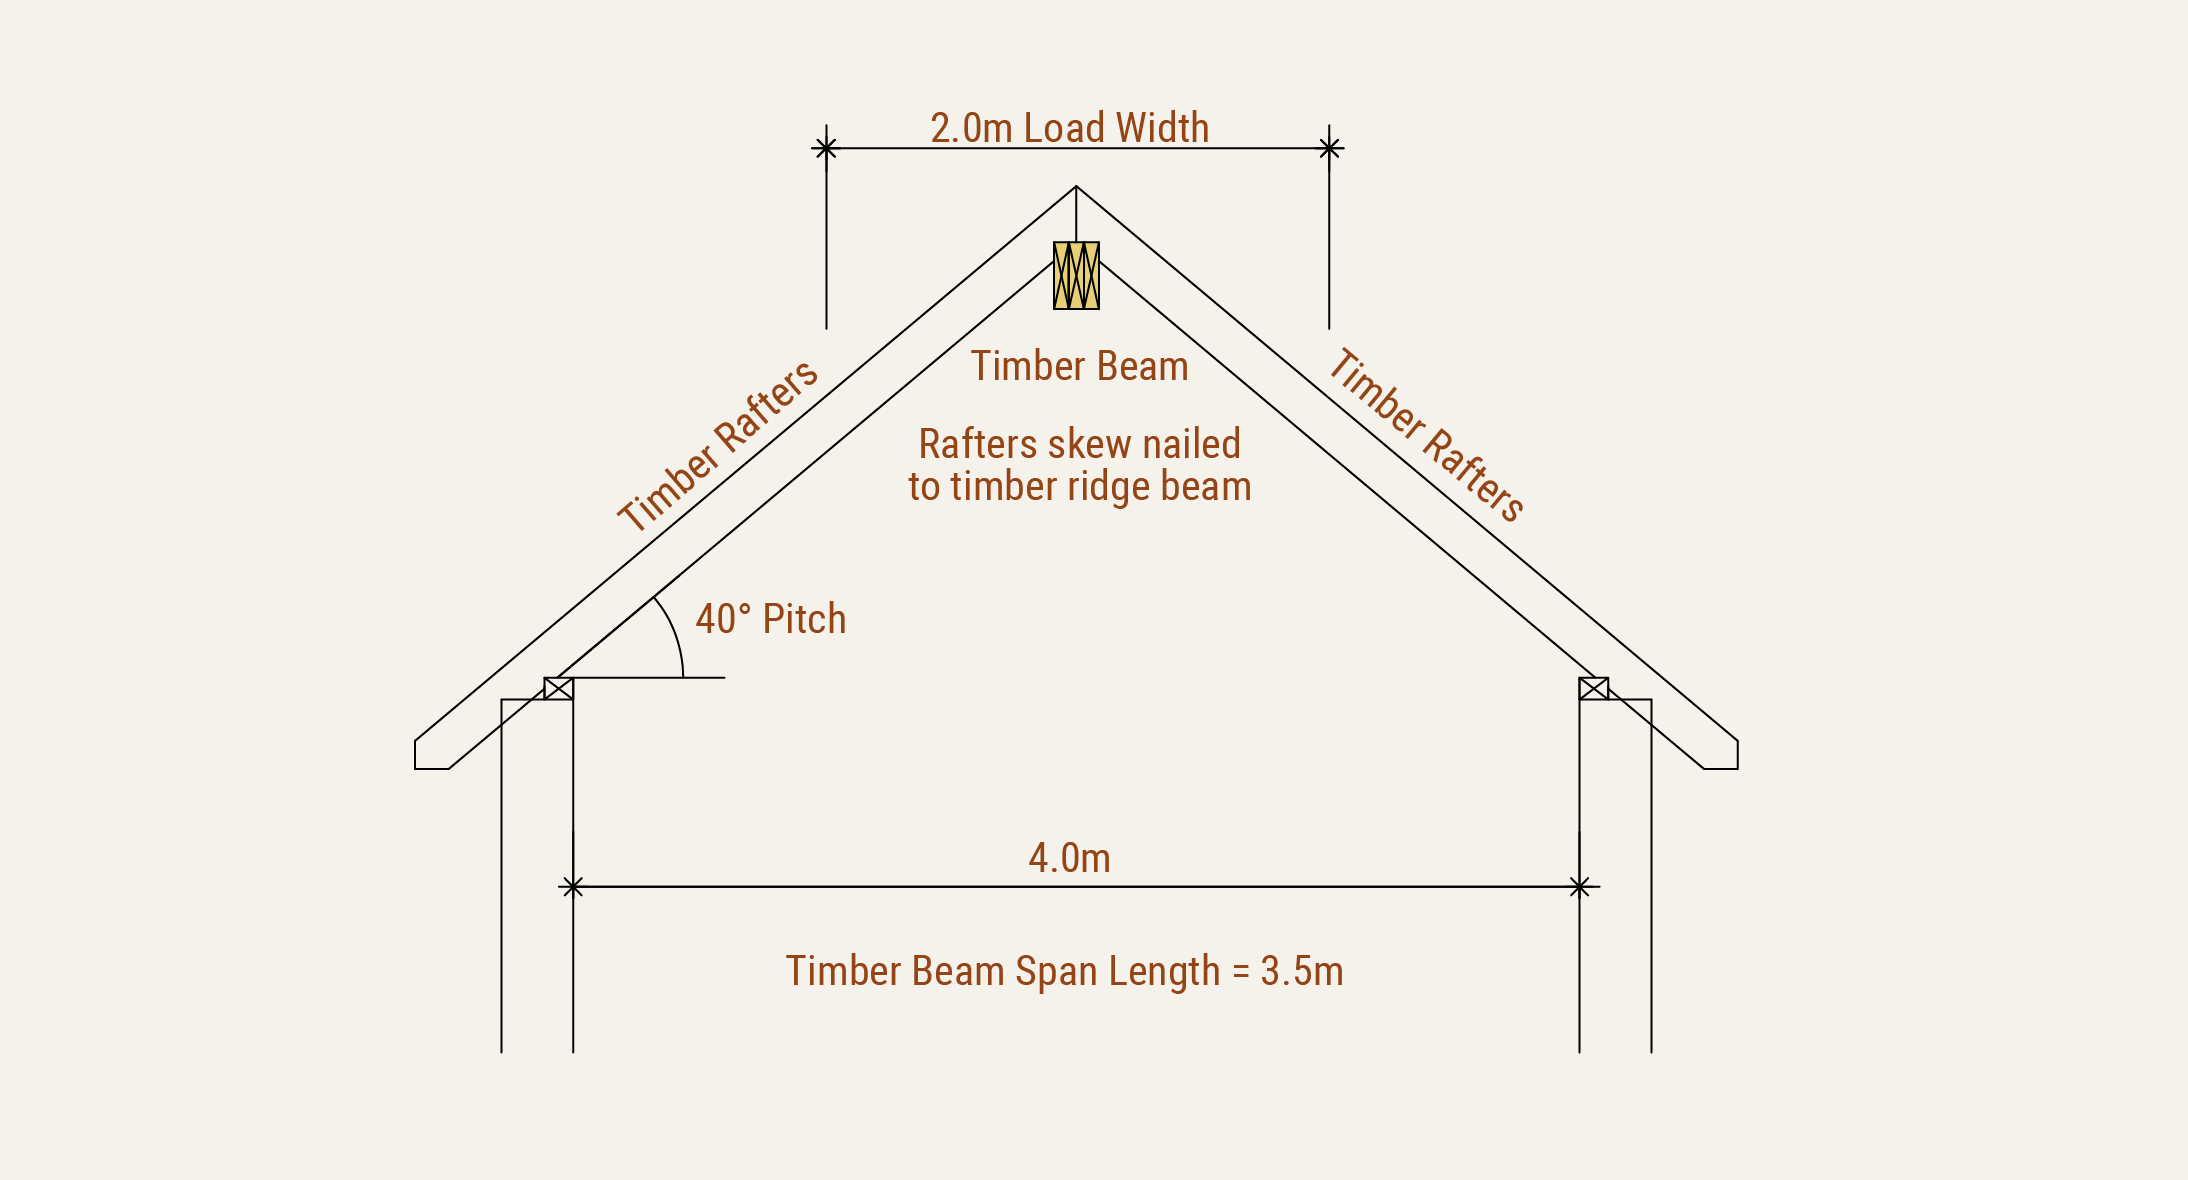 steel beam calculations for steel beam supporting timber floor joists